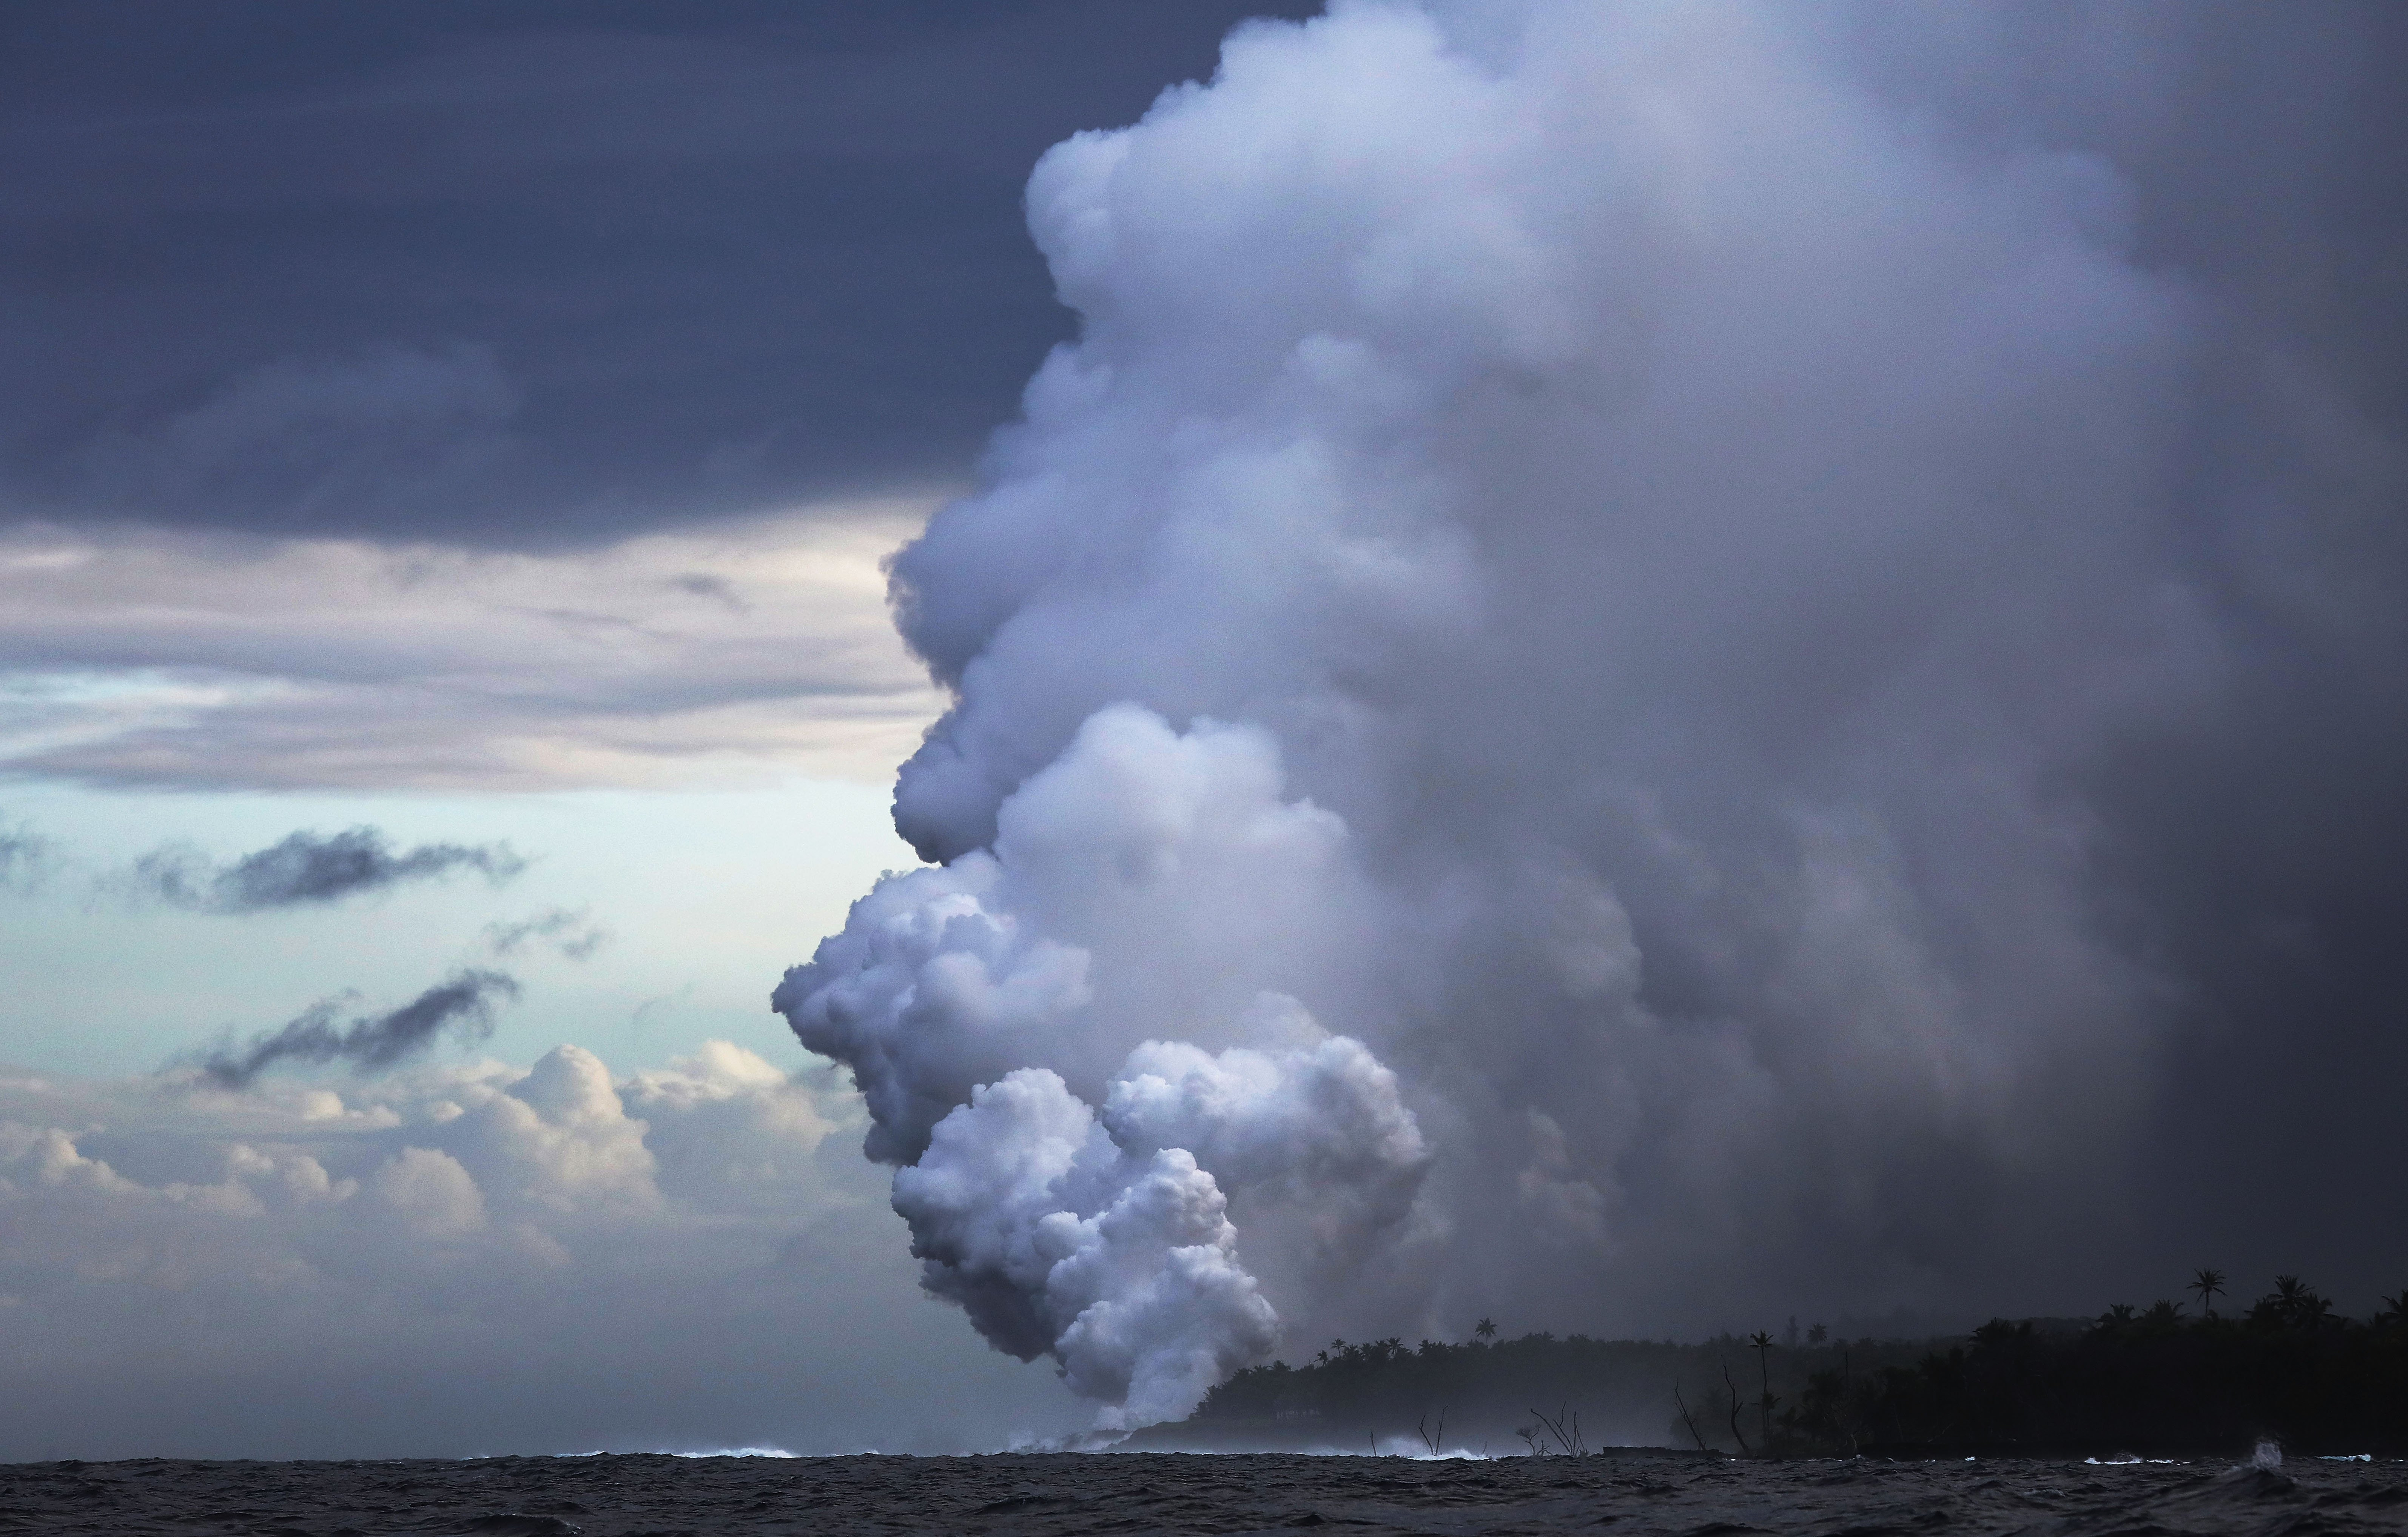 A steam plume rises from lava entering the Pacific Ocean, after flowing to the water from a Kilauea volcano fissure, on Hawaii's Big Island on May 20, 2018 near Pahoa, Hawaii.